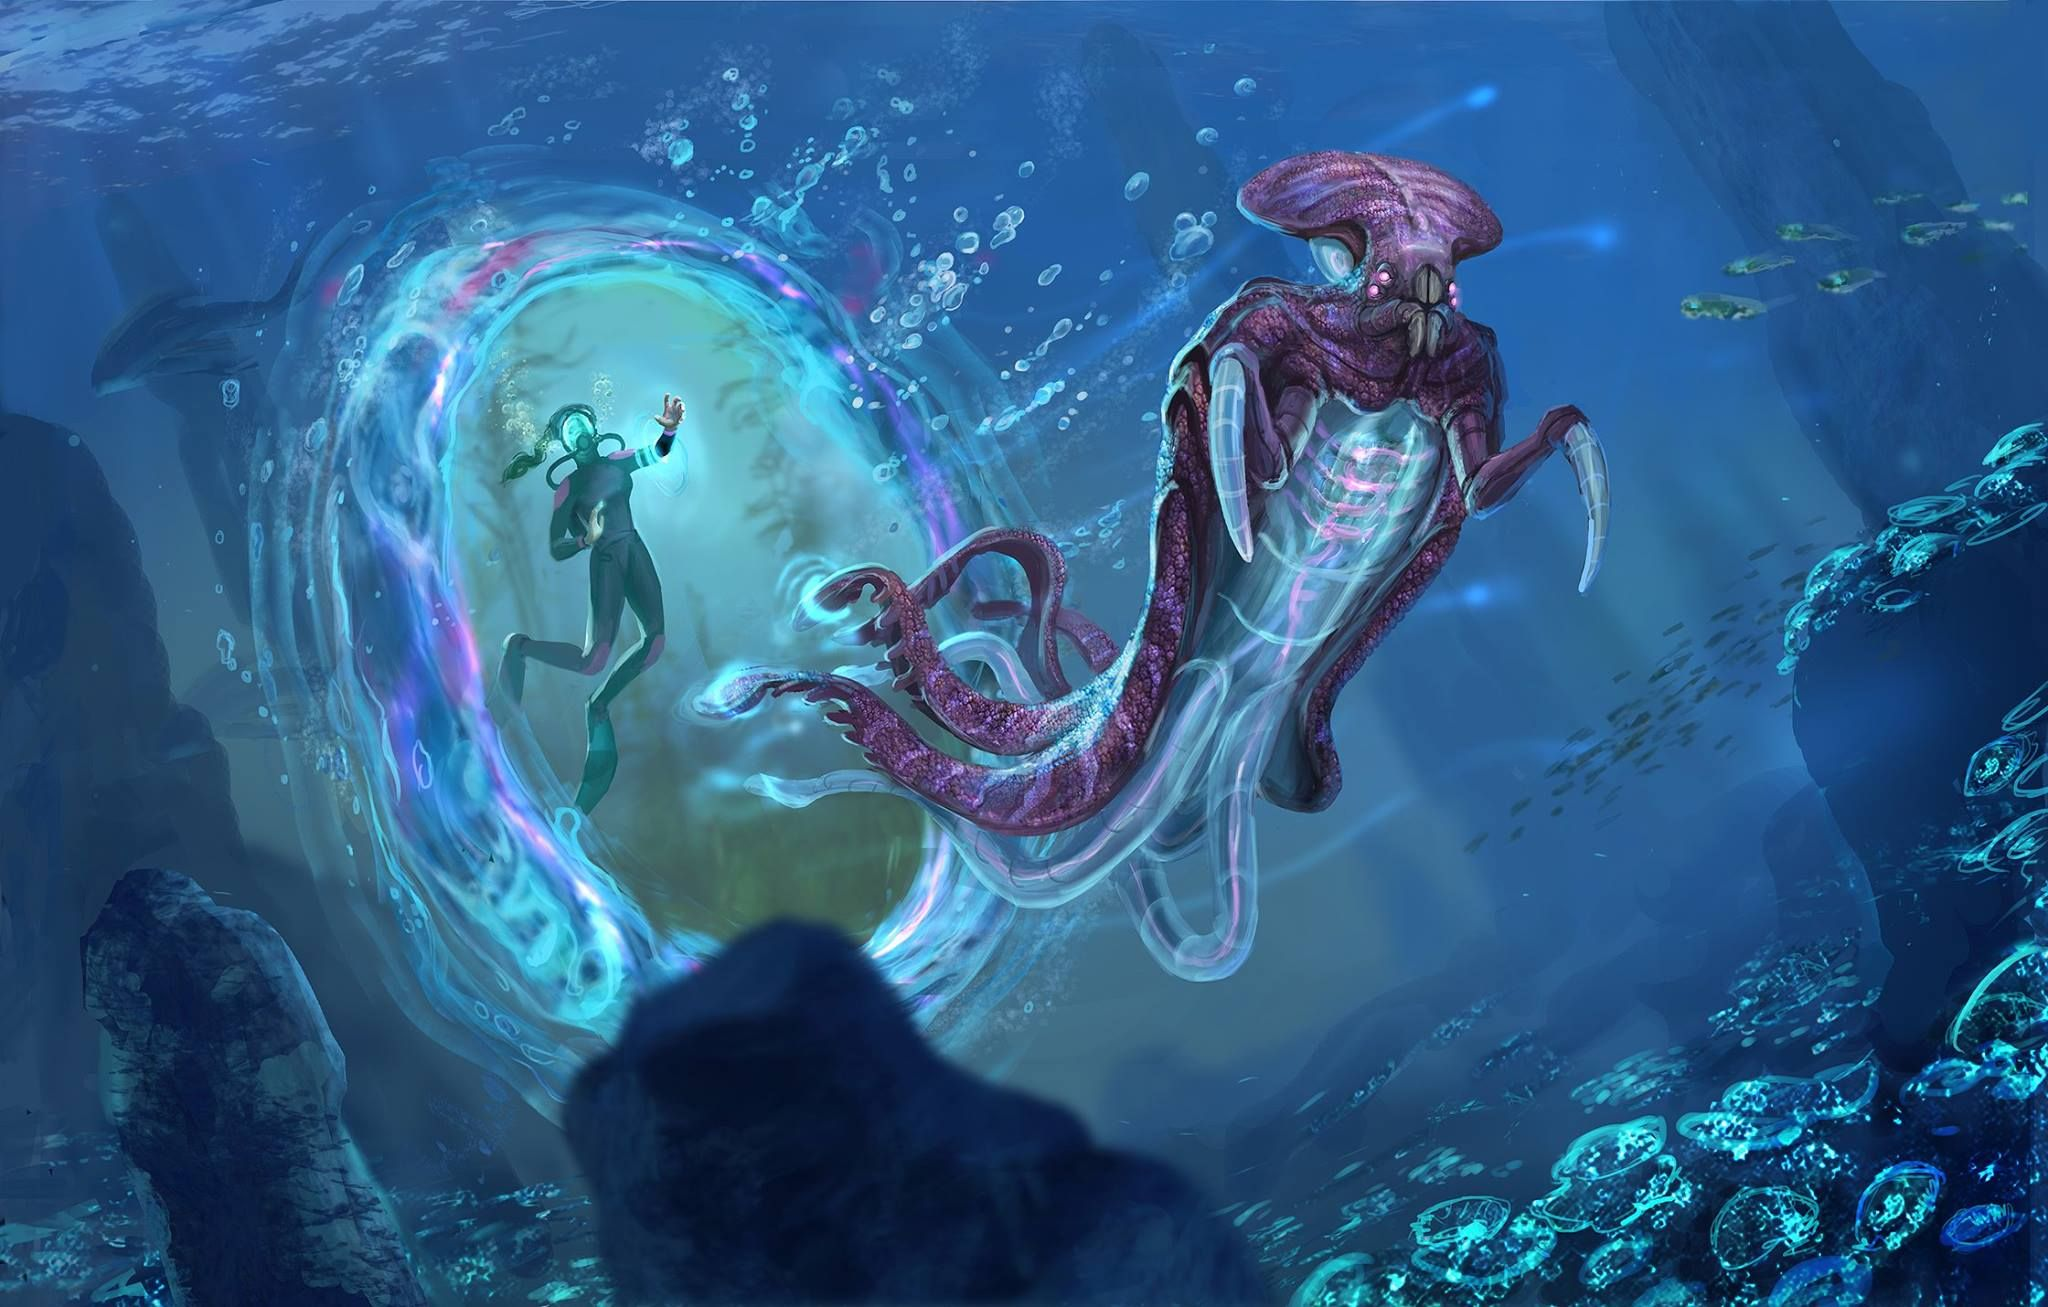 Ahh    The warper! One of the few creatures in Subnautica that tend